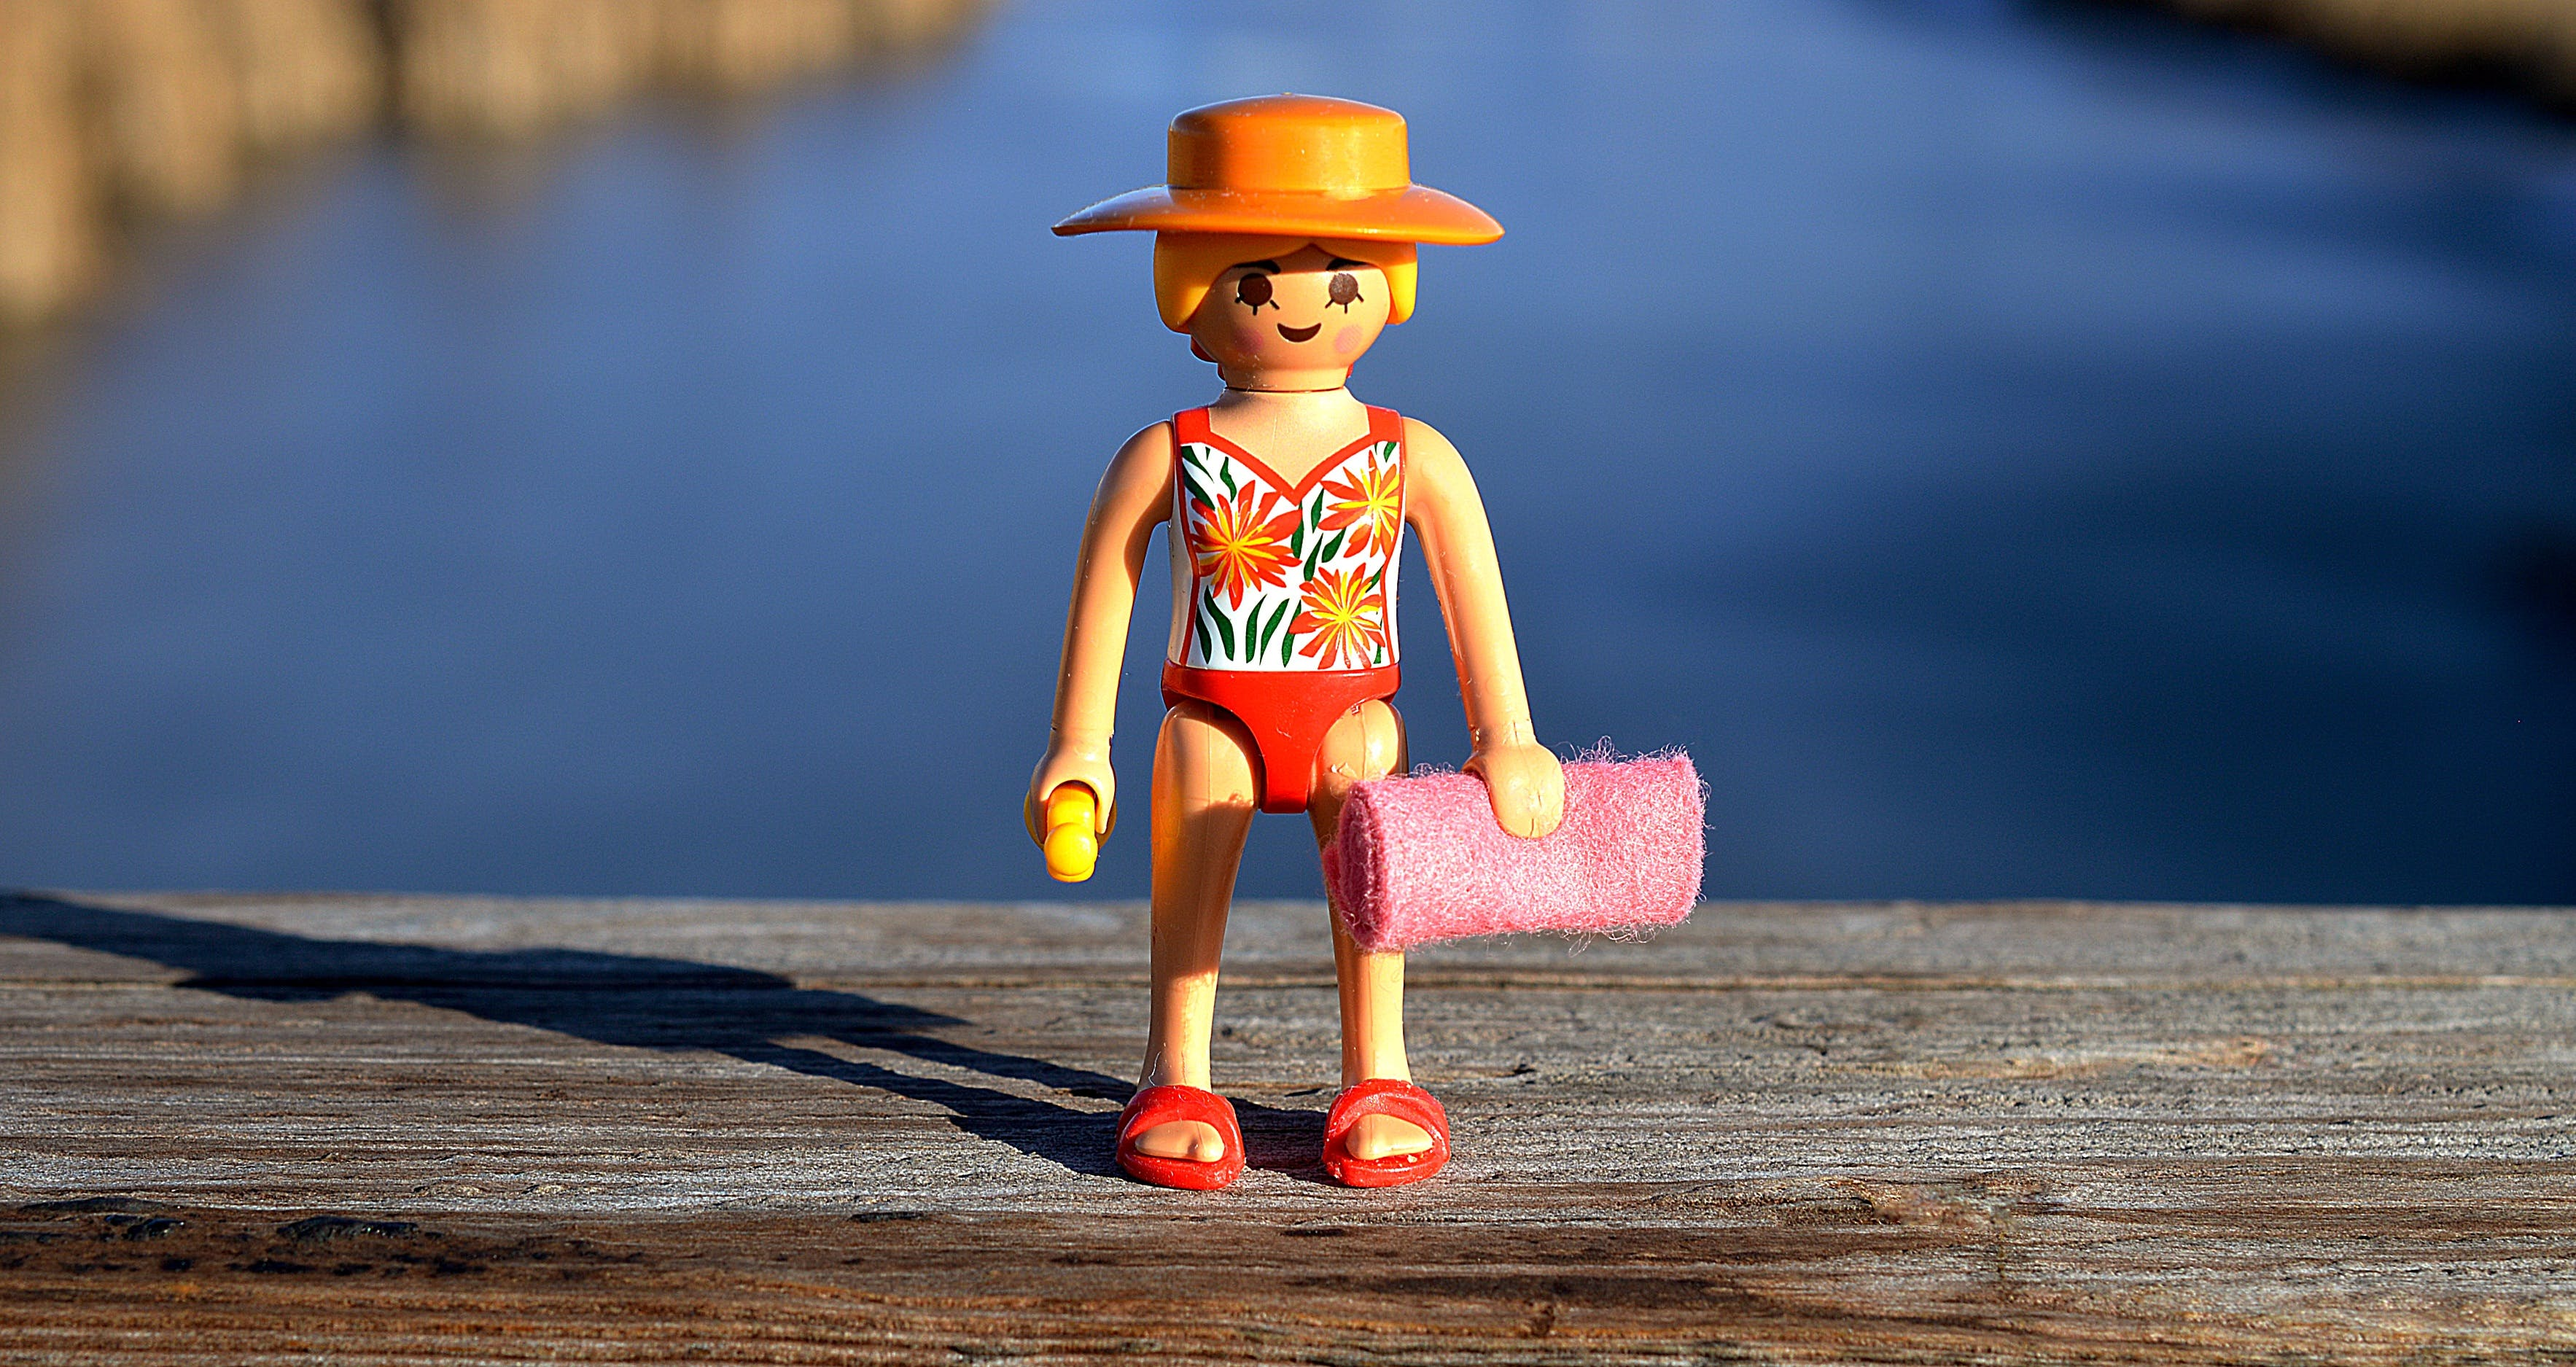 Free stock photo of bathing suit, holiday, lake, lego